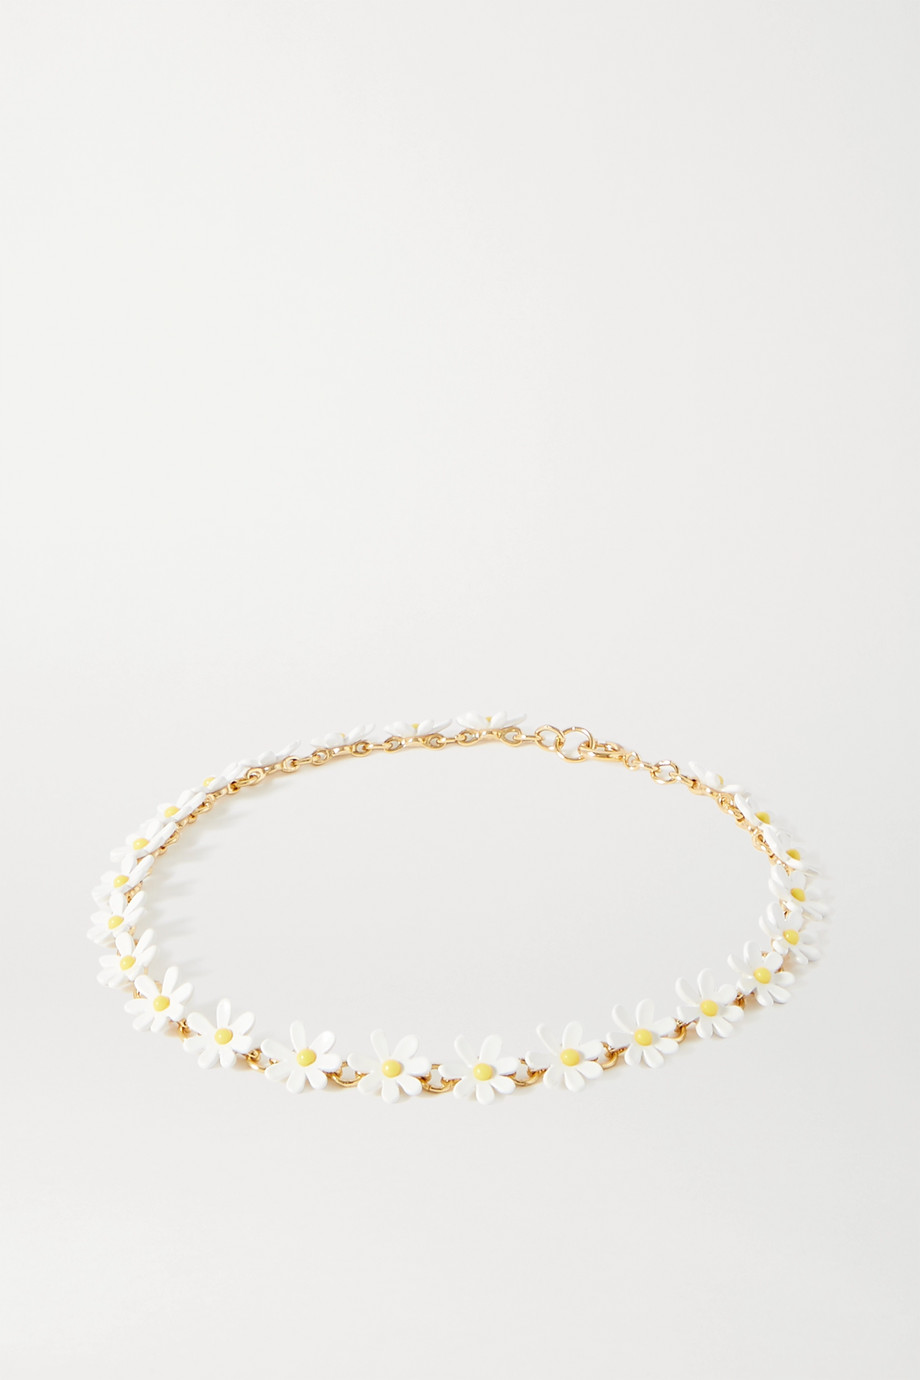 Roxanne Assoulin Everything's Coming Up Daisies goldfarbene Kette mit Emaille